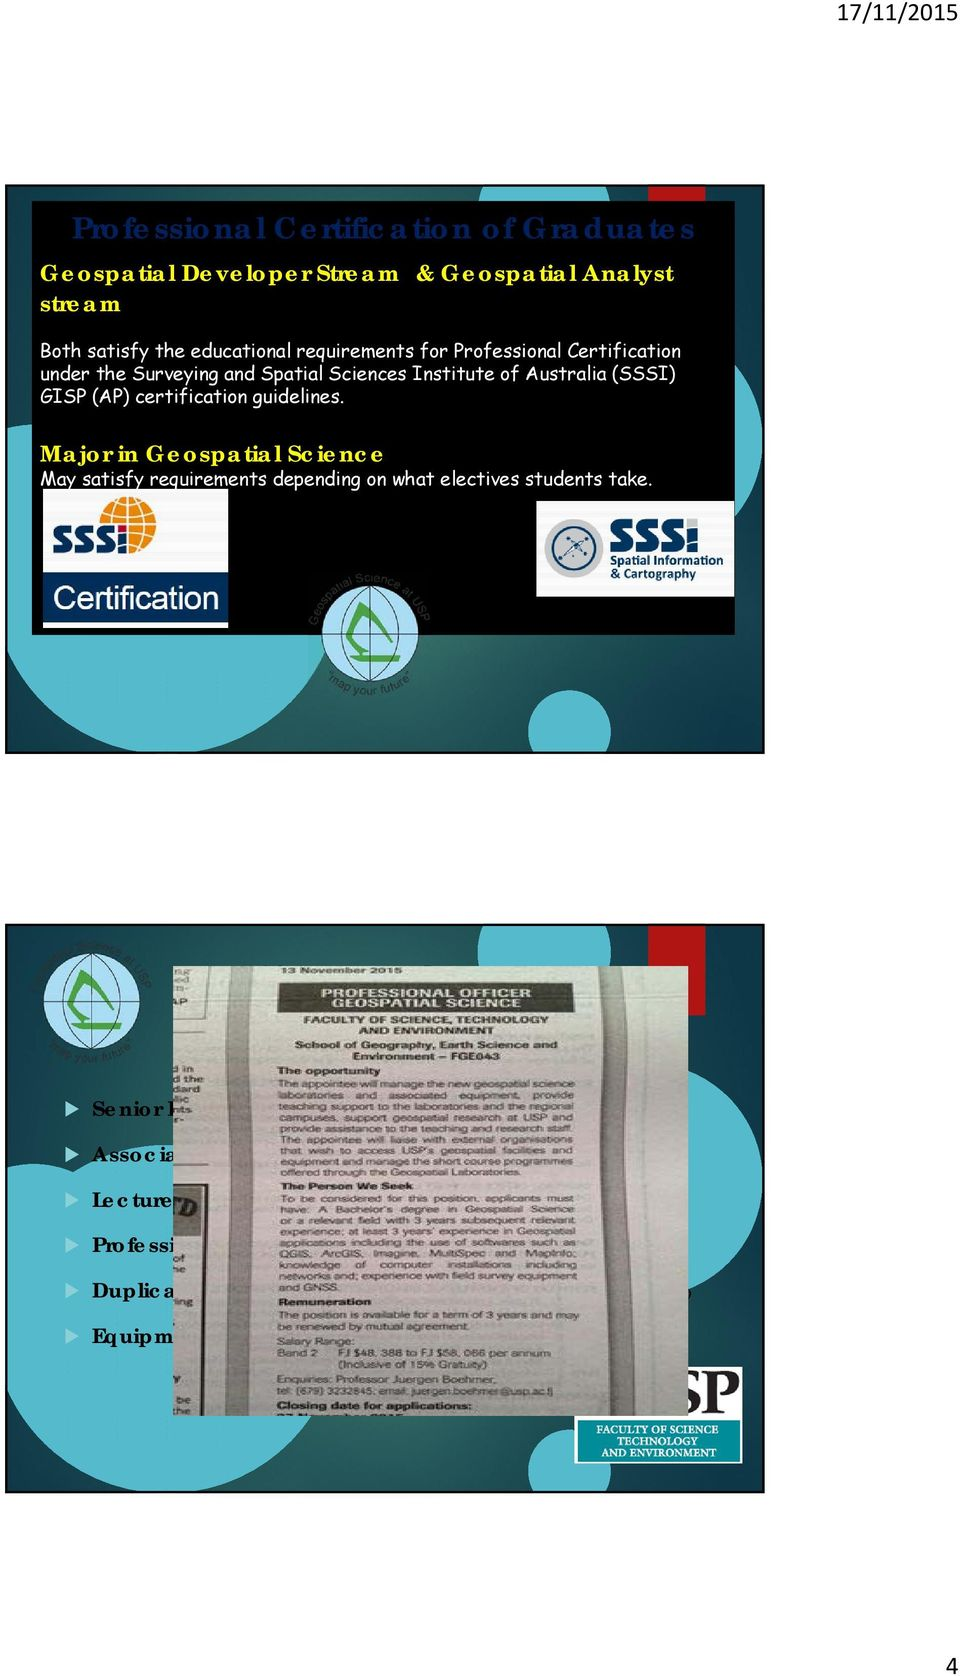 Sciences Institute of Semester Australia 2 (SSSI) GISP UU200 (AP) Ethics certification and Governance guidelines.